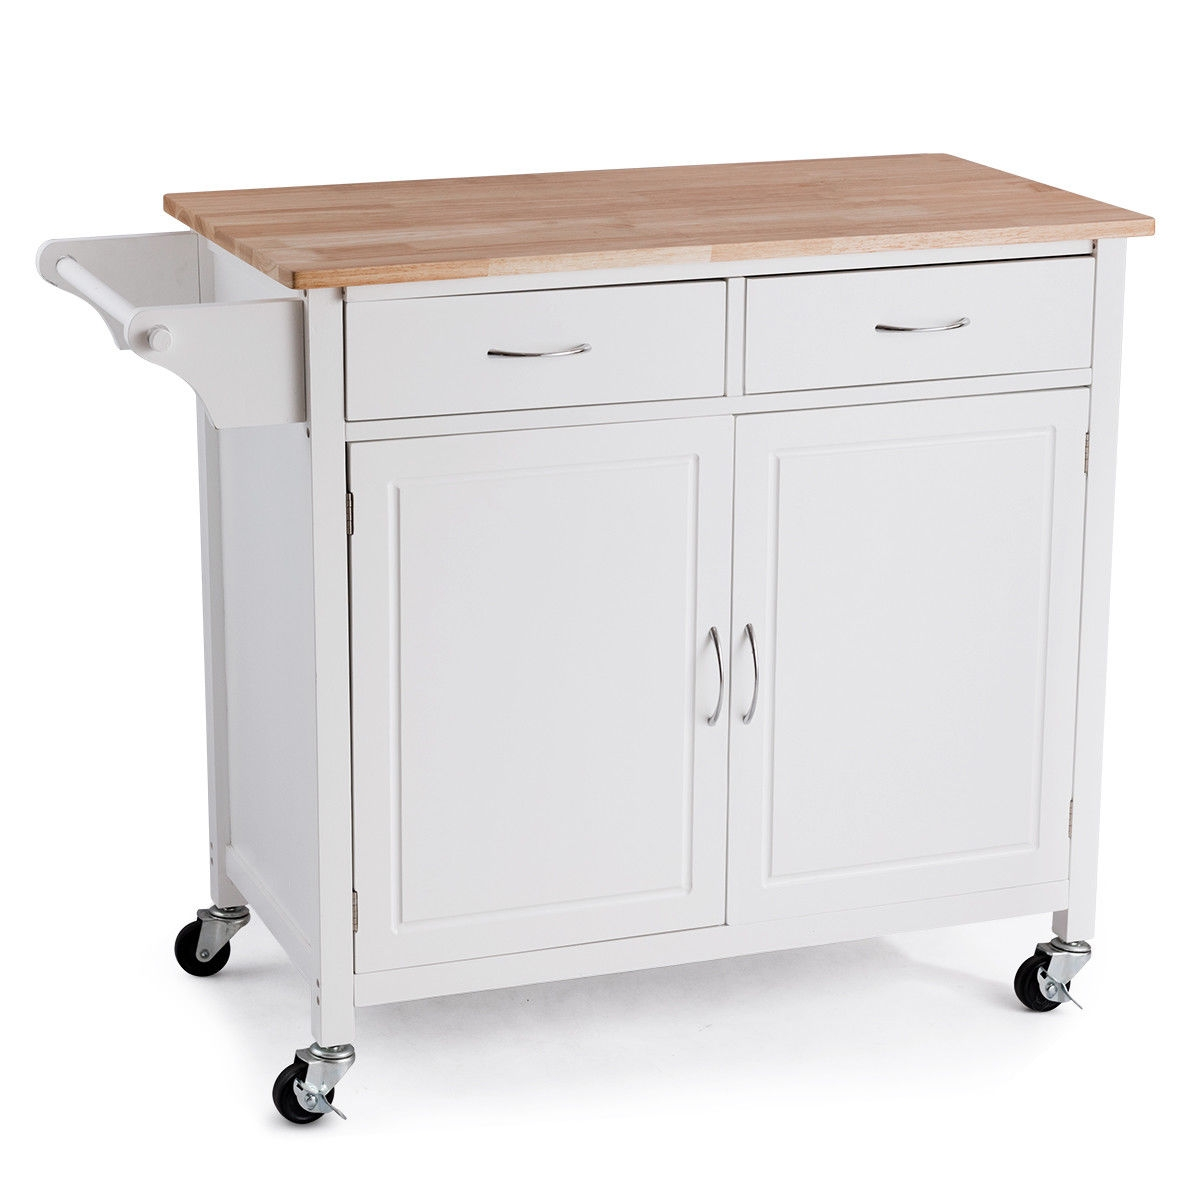 Modern Rolling Kitchen Cart Island with Wooden Top